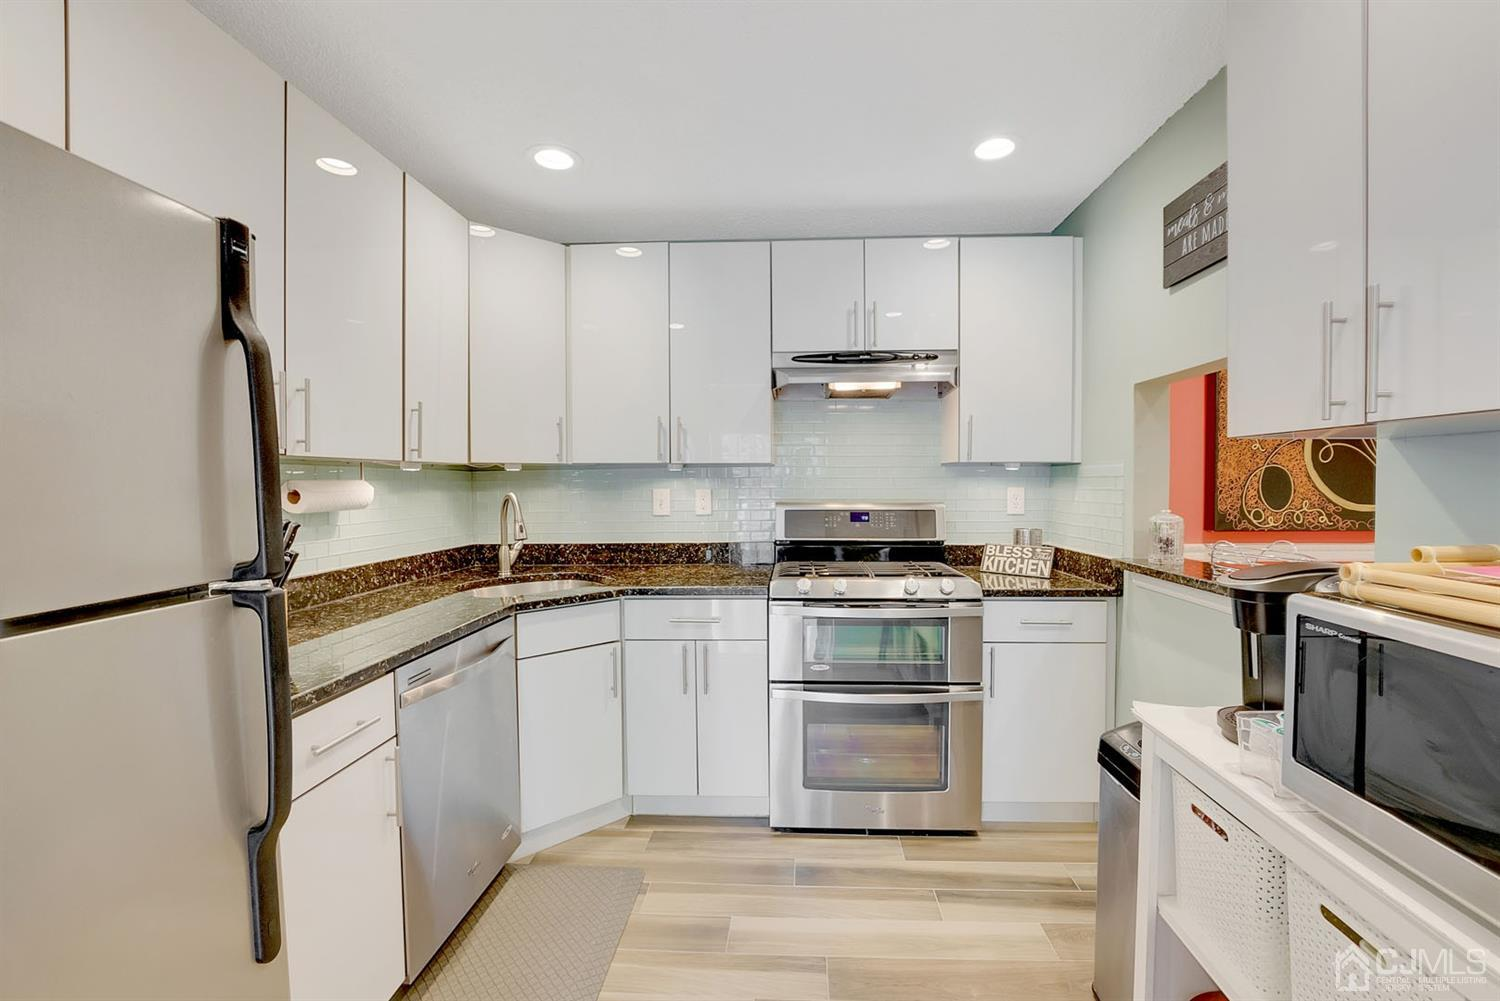 Updated kitchen with plenty of cabinets space.